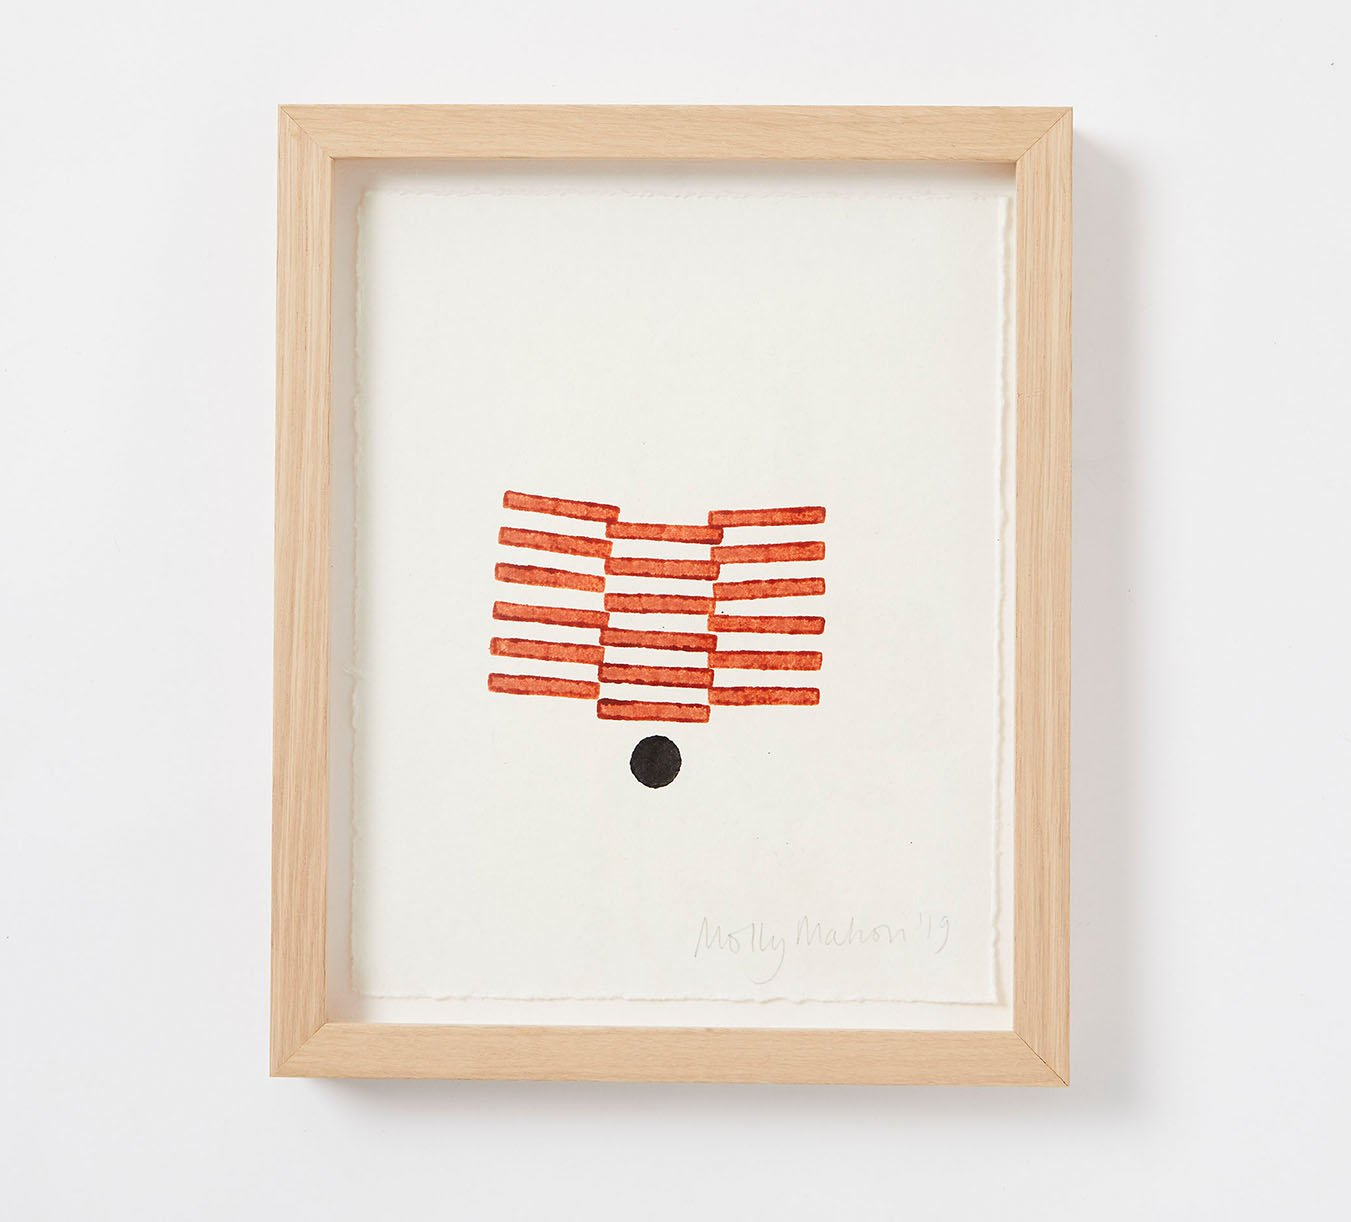 Framed - Cotton Paper Print - Fran - Rust